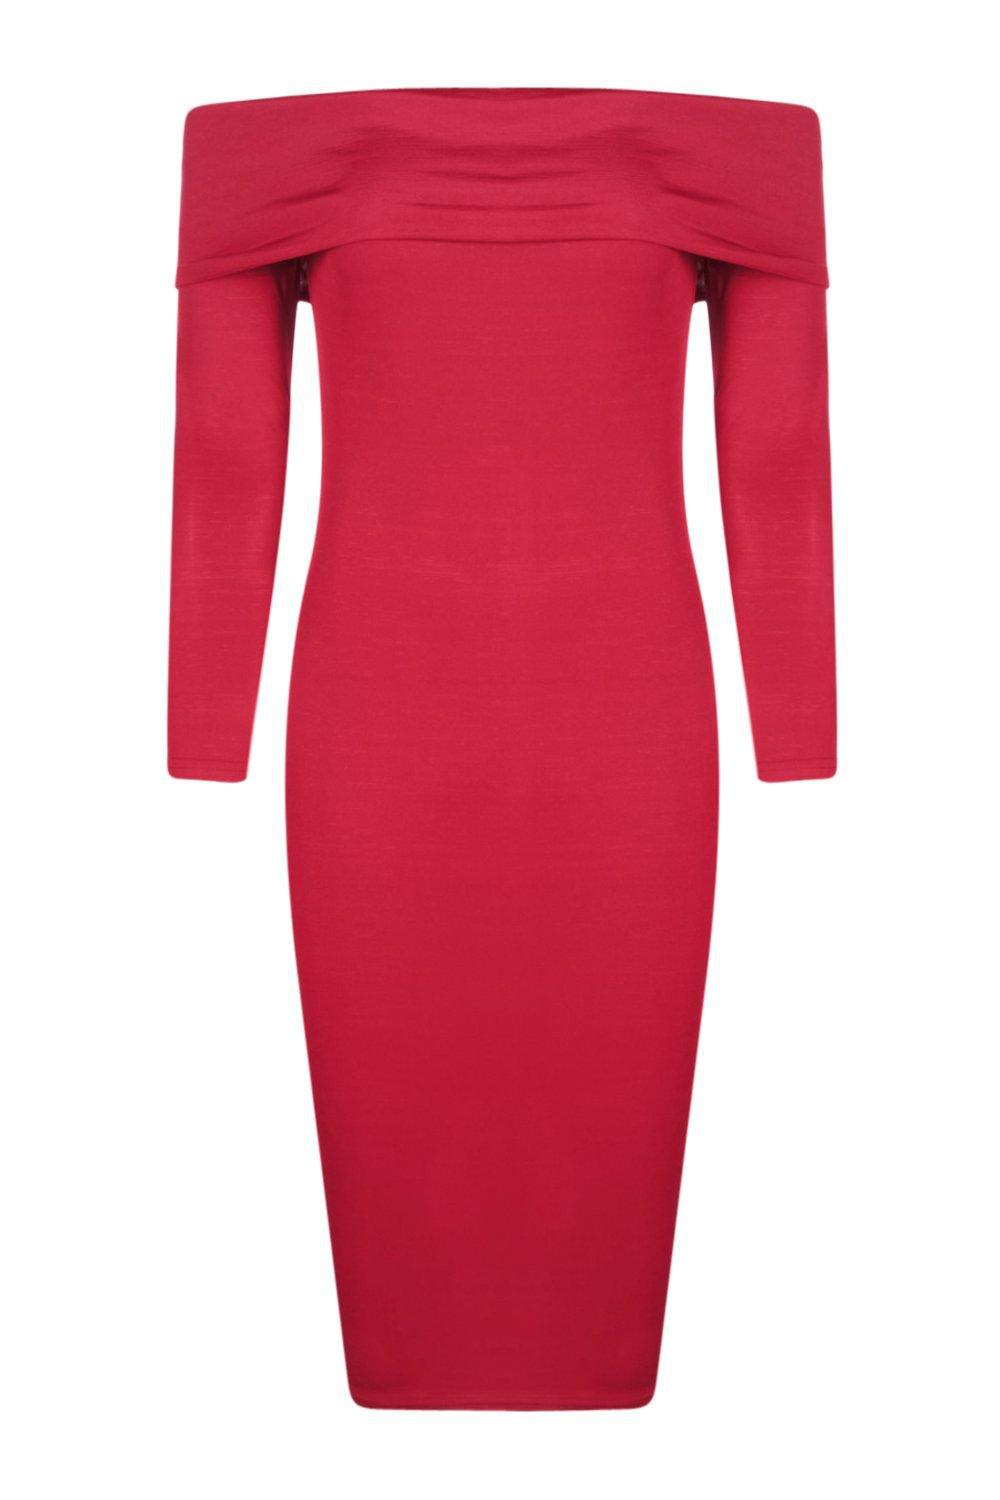 073bc278bc0e Lyst - Boohoo Amy Slinky Oversized Off The Shoulder Midi Dress in Red